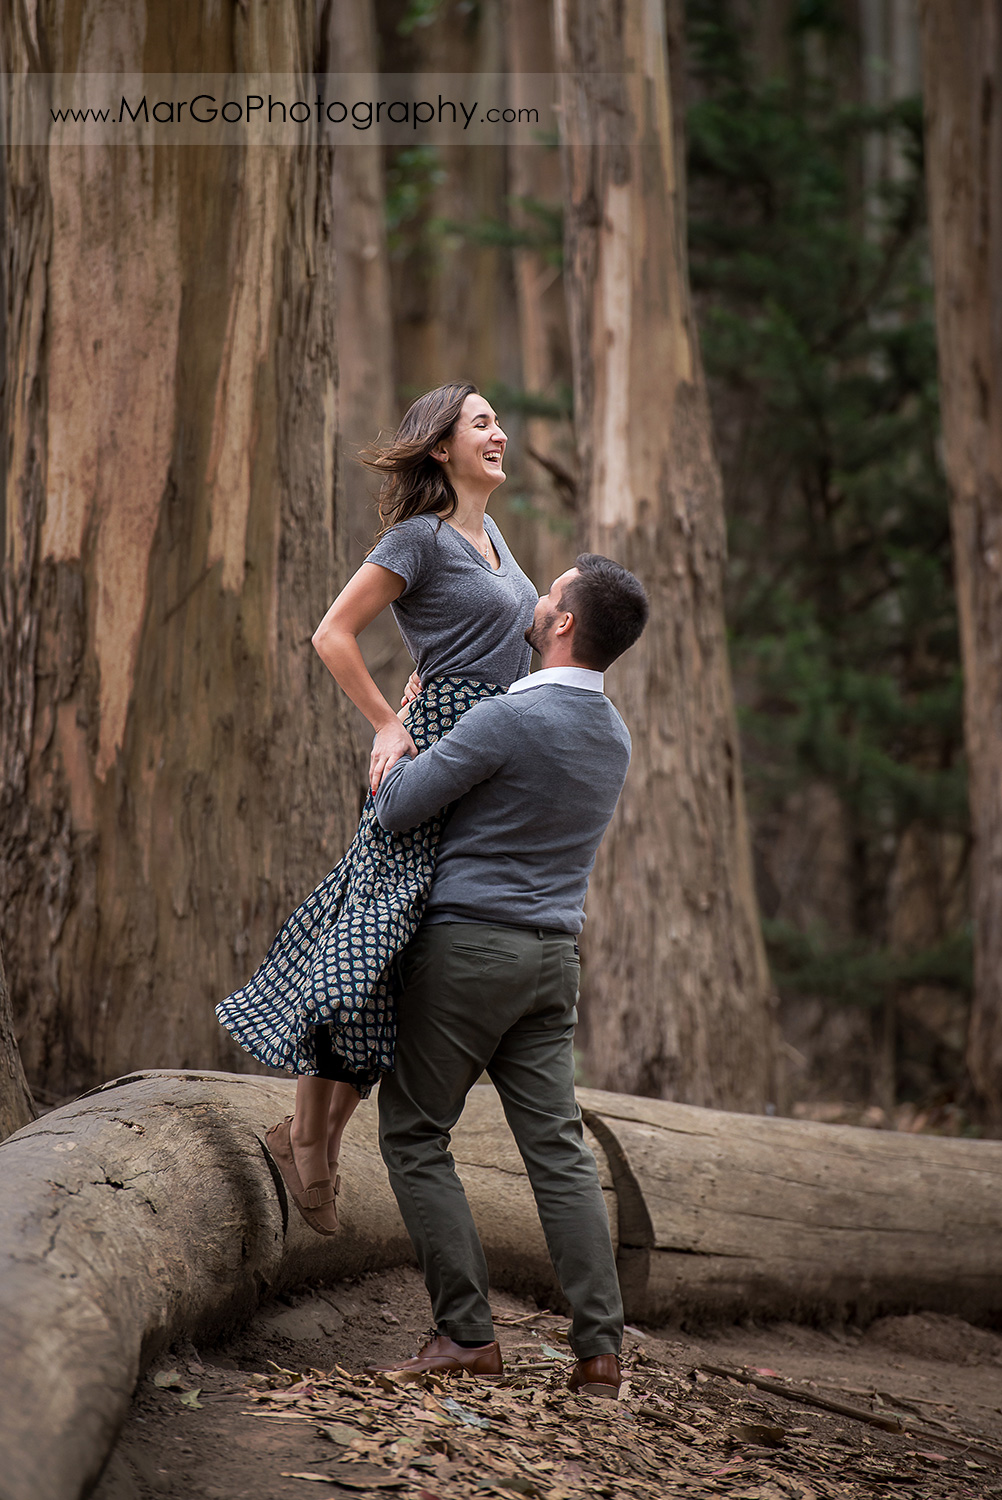 eengagement session at Lover's Lane at the Presidio in San Francisco - woman jumping into man's arms